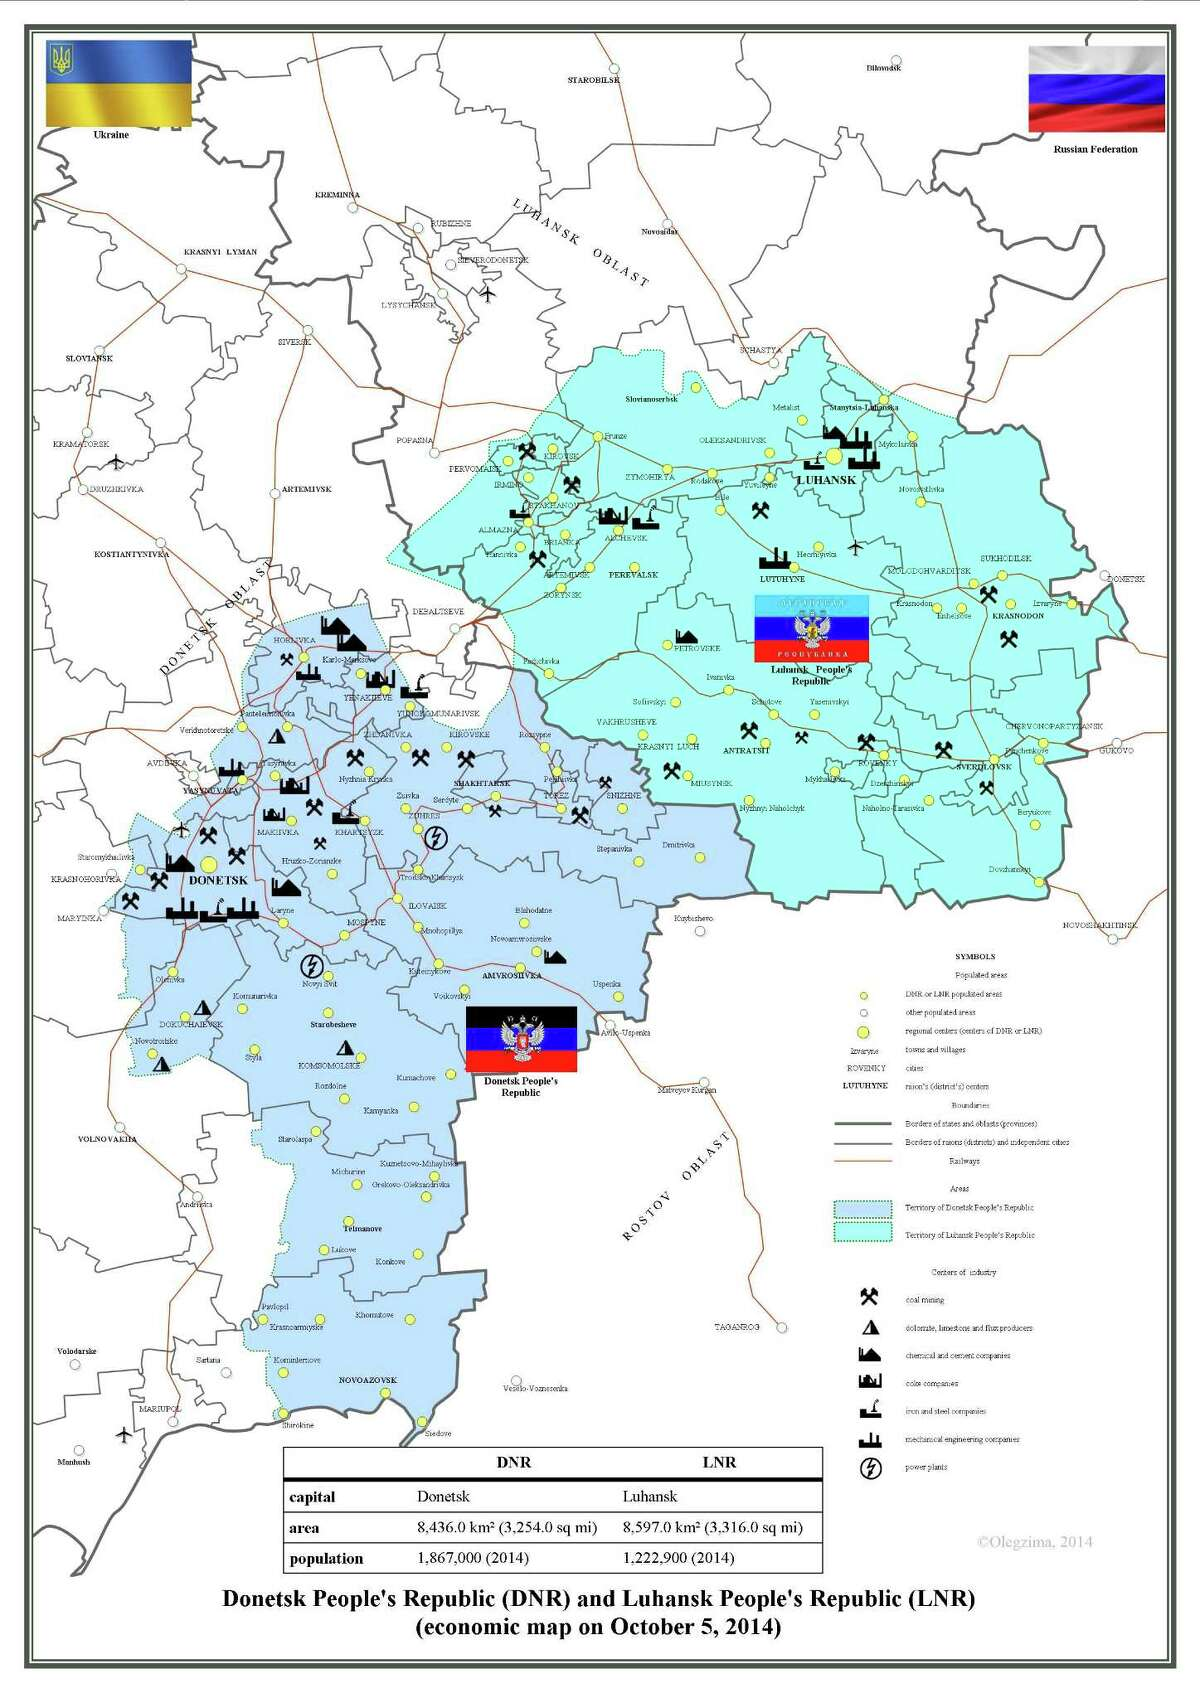 NEW RUSSIA (Donetsk People's Republic and Lugansk People's Republic) Country: Ukraine Population: Population: 3 million combined